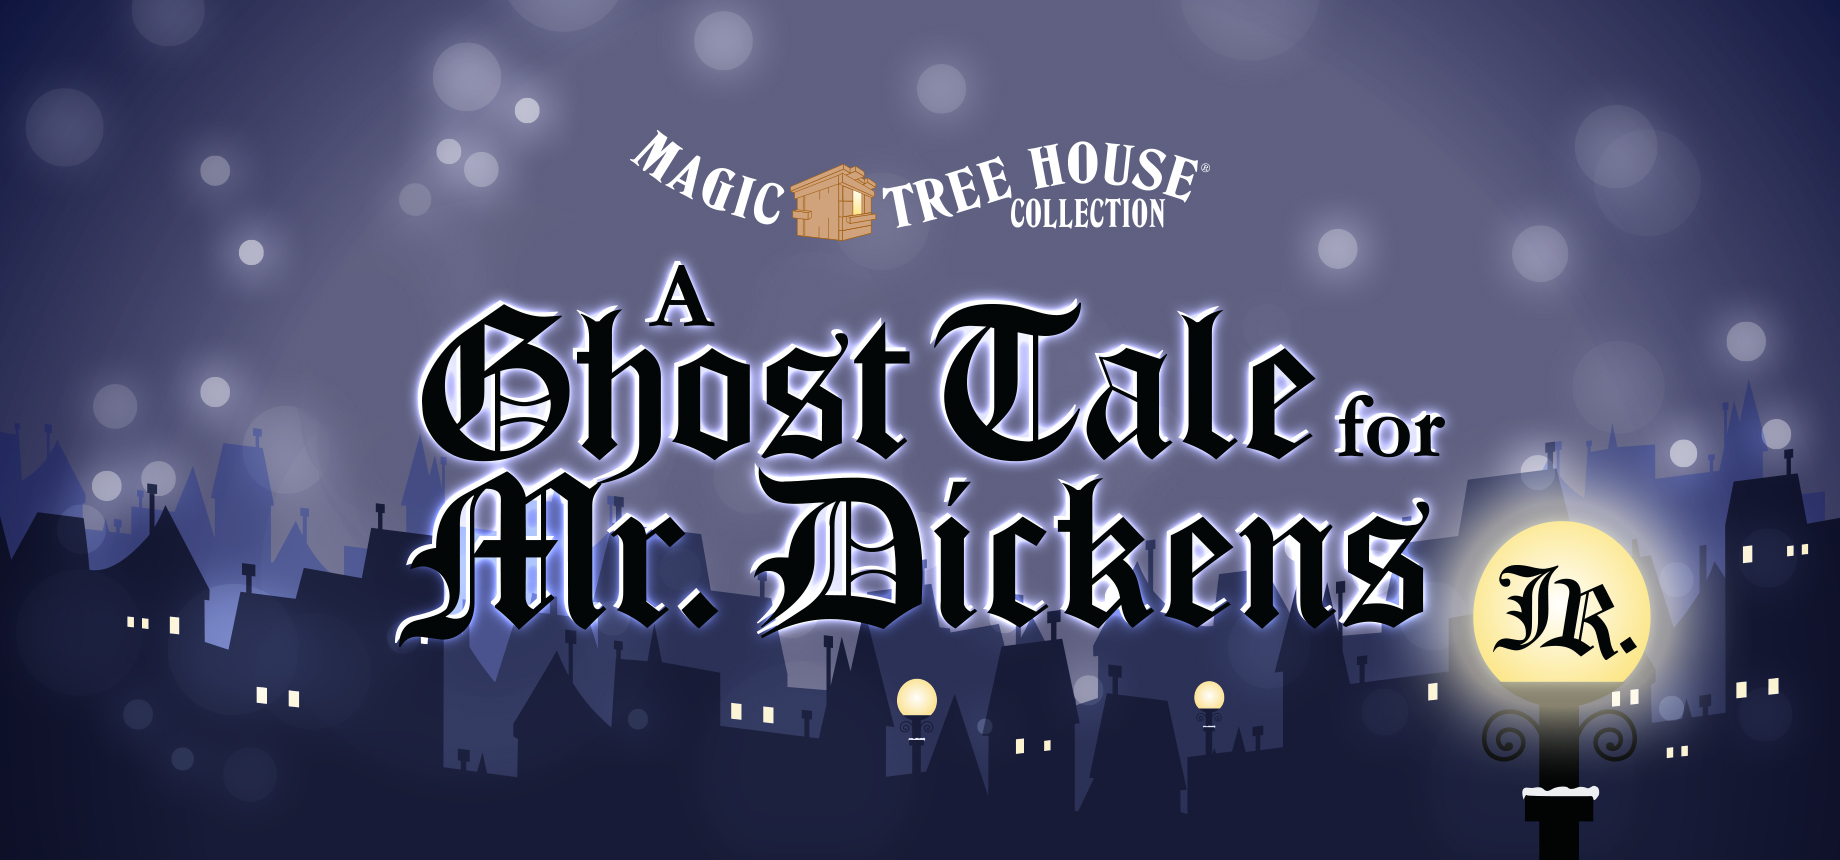 Magic Tree House A Ghost Tale For Mr Dickens Jr Music